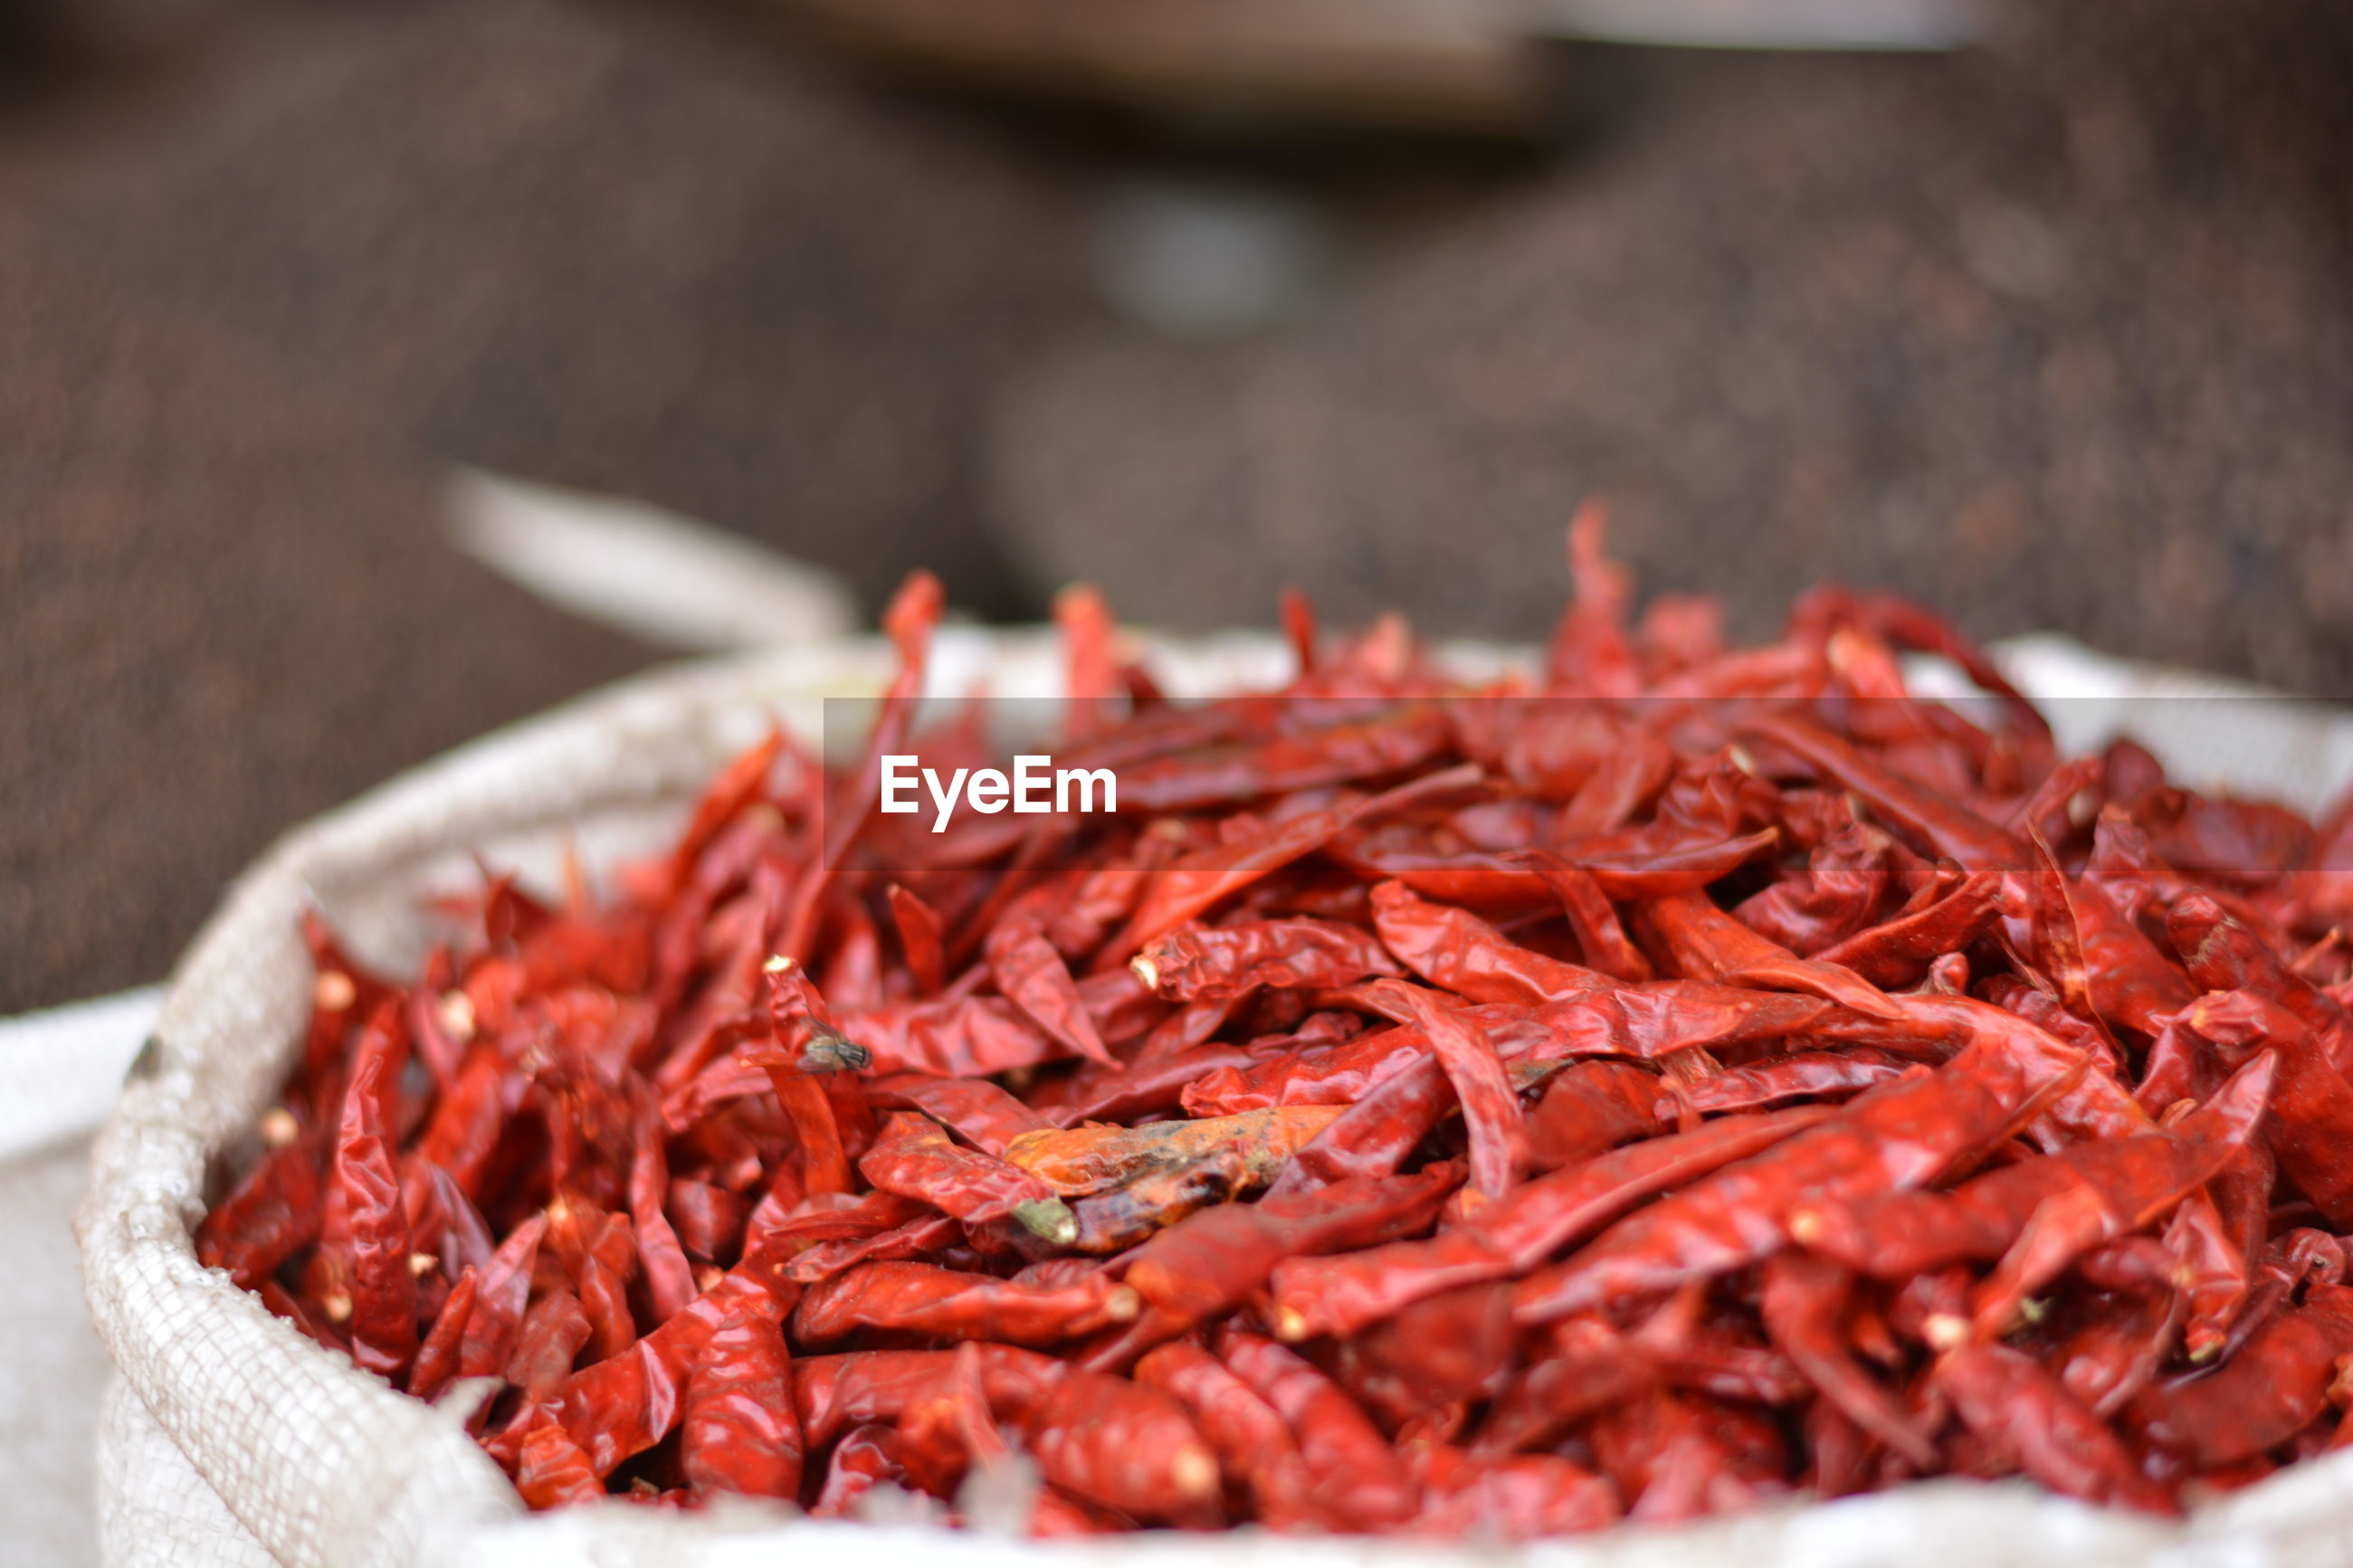 Close-up of dried red chili peppers in sack at market stall